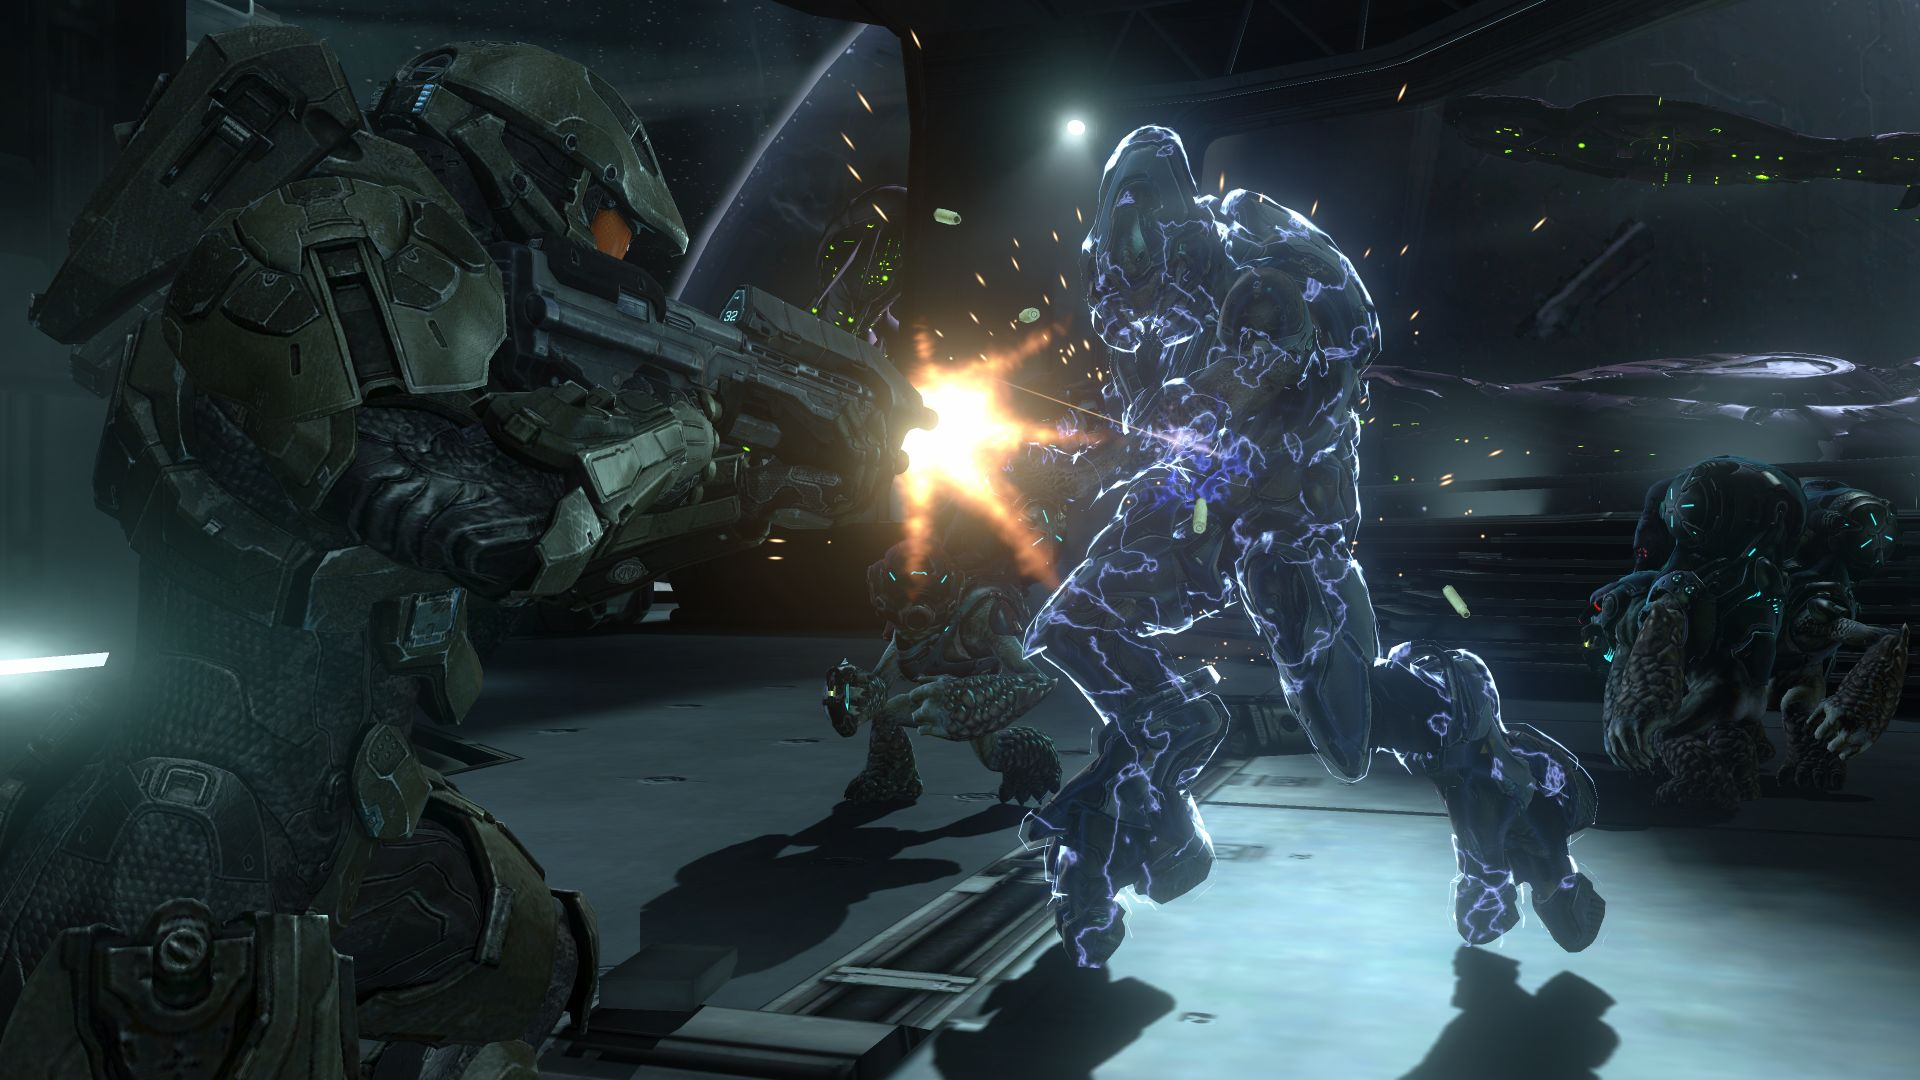 how do you play war games on halo 4